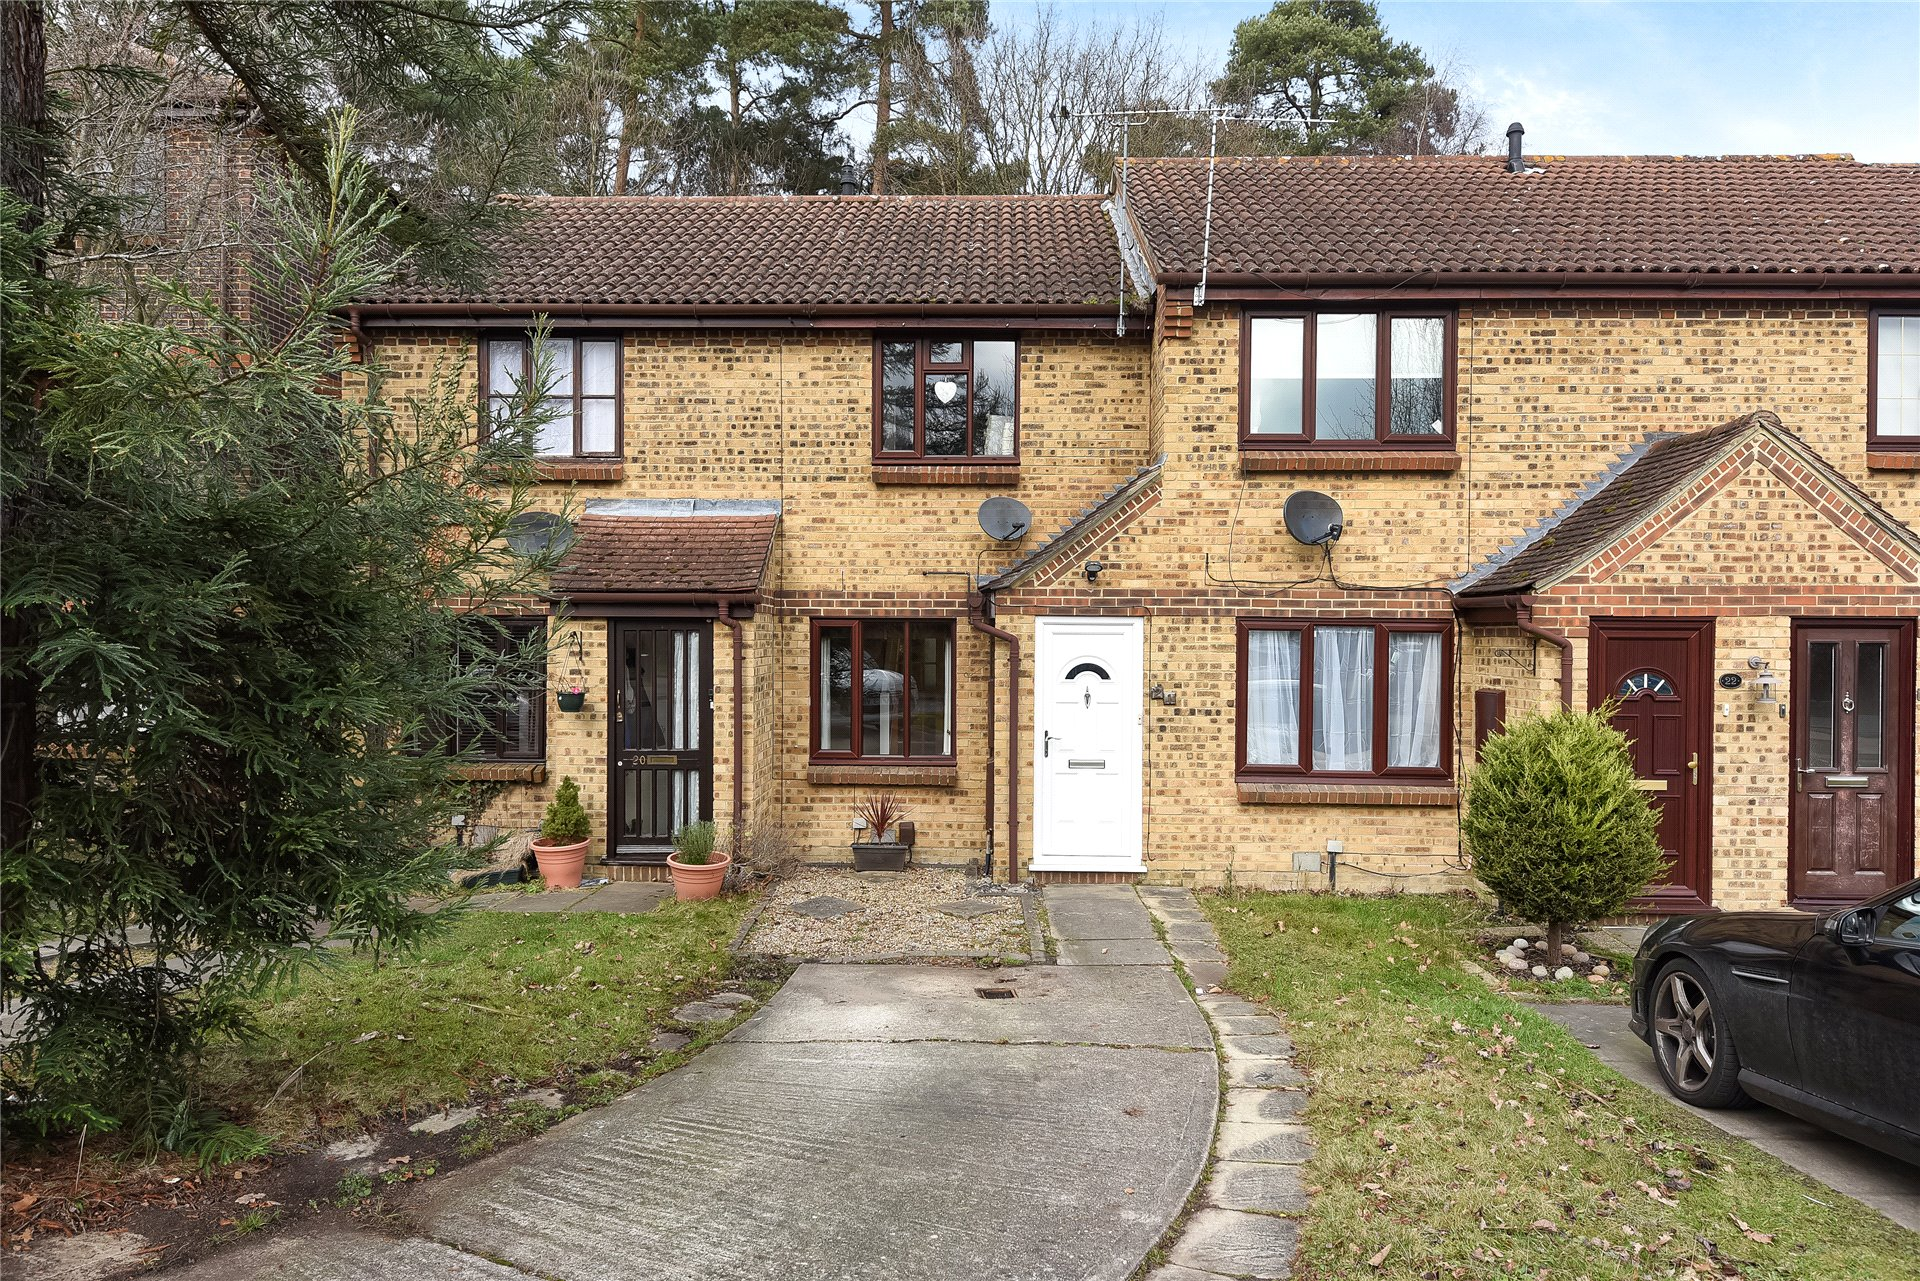 2 Bedrooms Terraced House for sale in Townsend Close, Bracknell, Berkshire, RG12